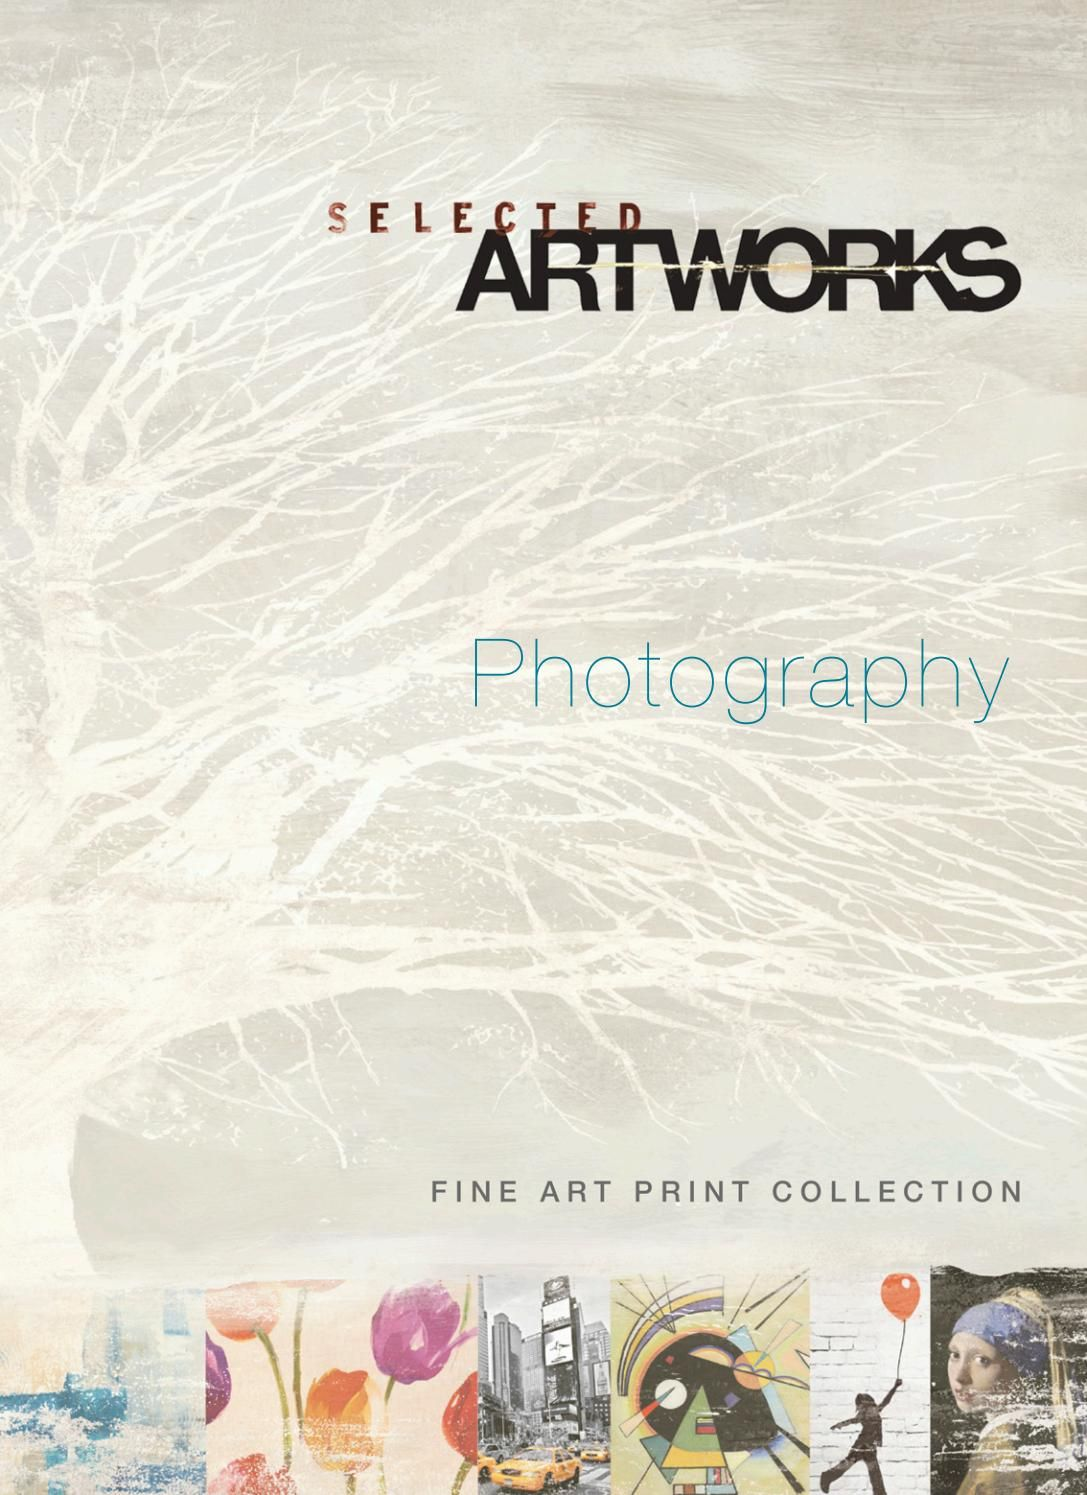 Selected Artwork Photography